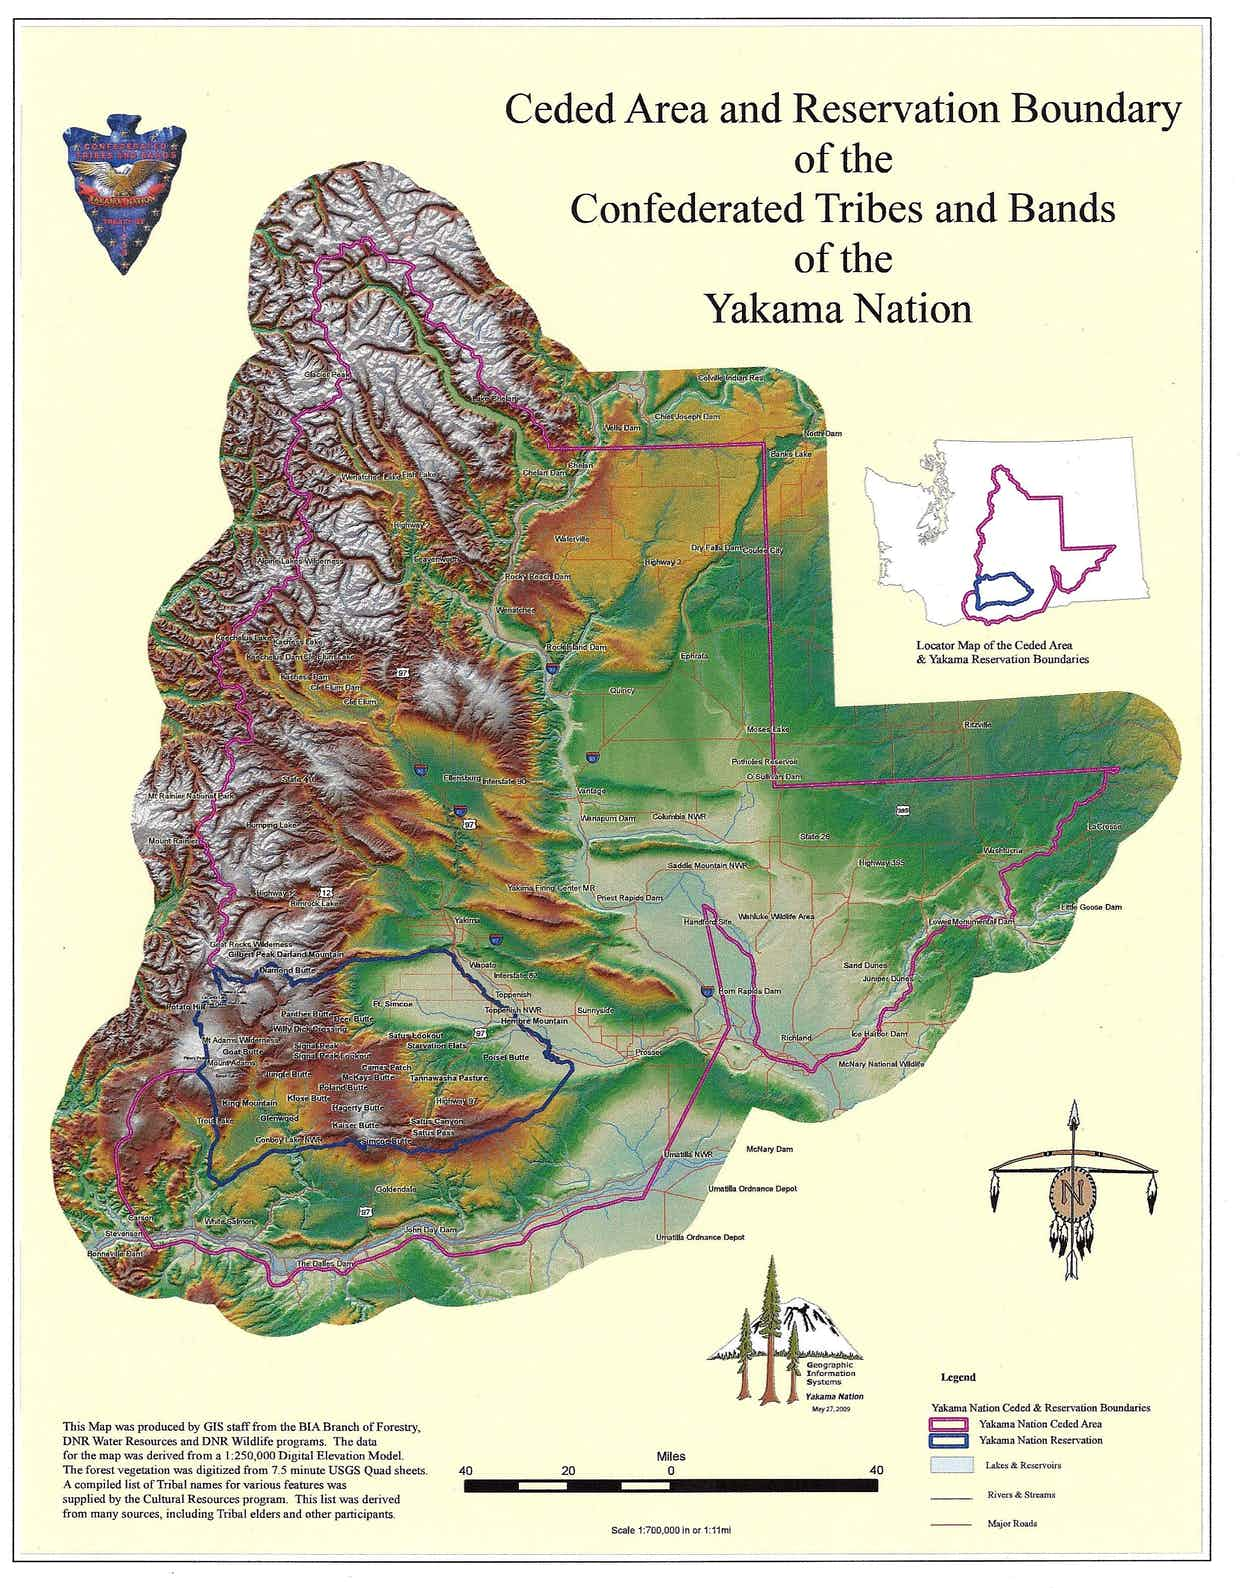 Pictured: Map of the Ceded Area and Reservation Boundary of the The Confederated Tribes and Bands of the Yakama Nation. (Image: The Confederated Tribes and Bands of the Yakama Nation)